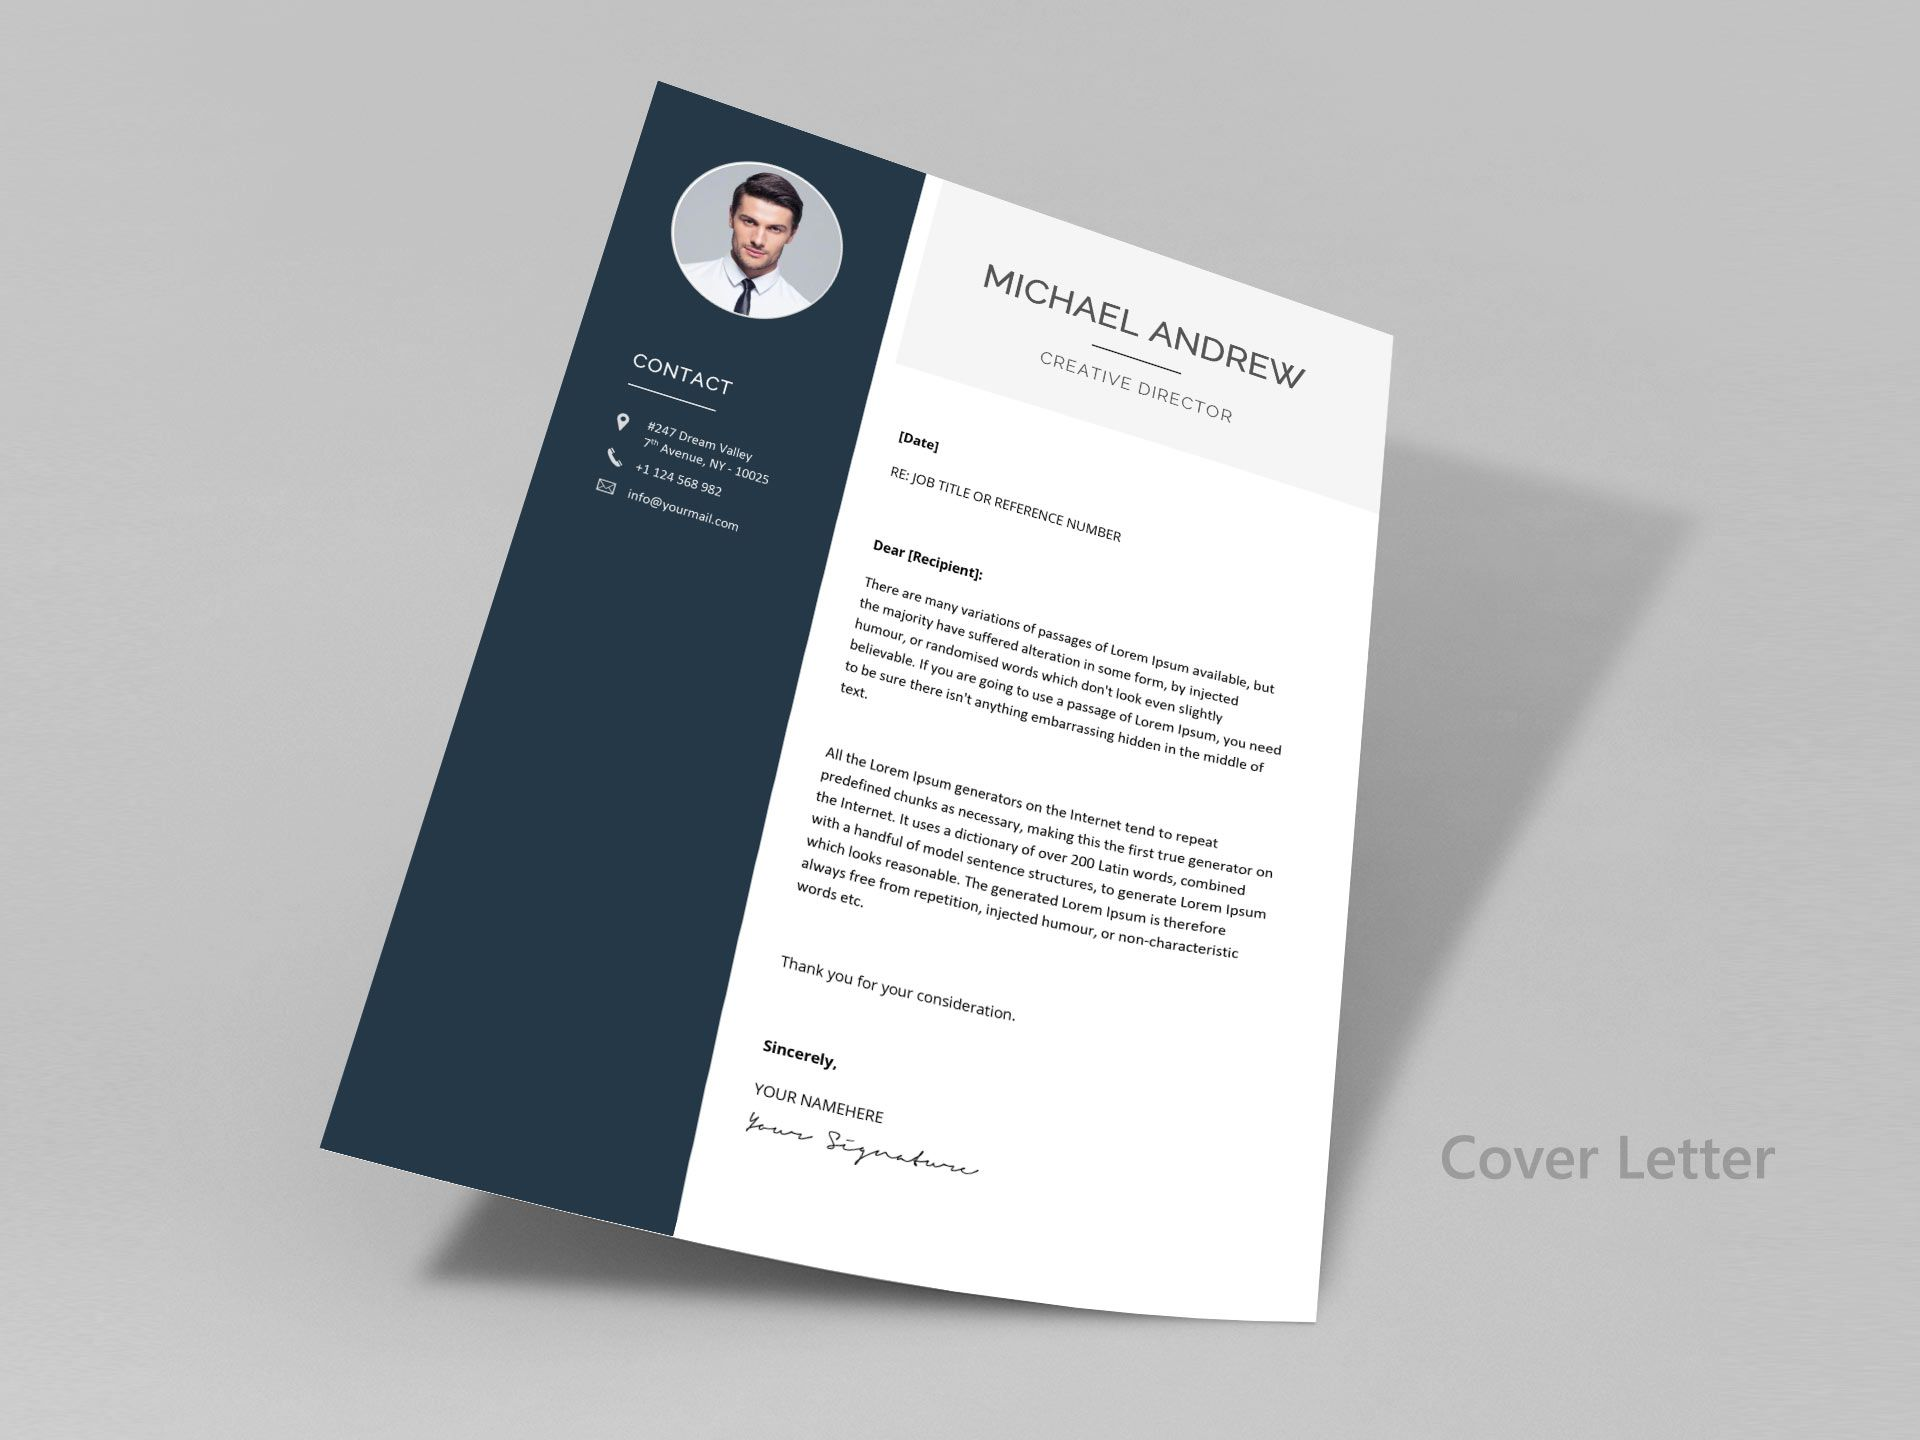 005 Sensational Free Stylish Resume Template Highest Quality  Templates Word DownloadFull